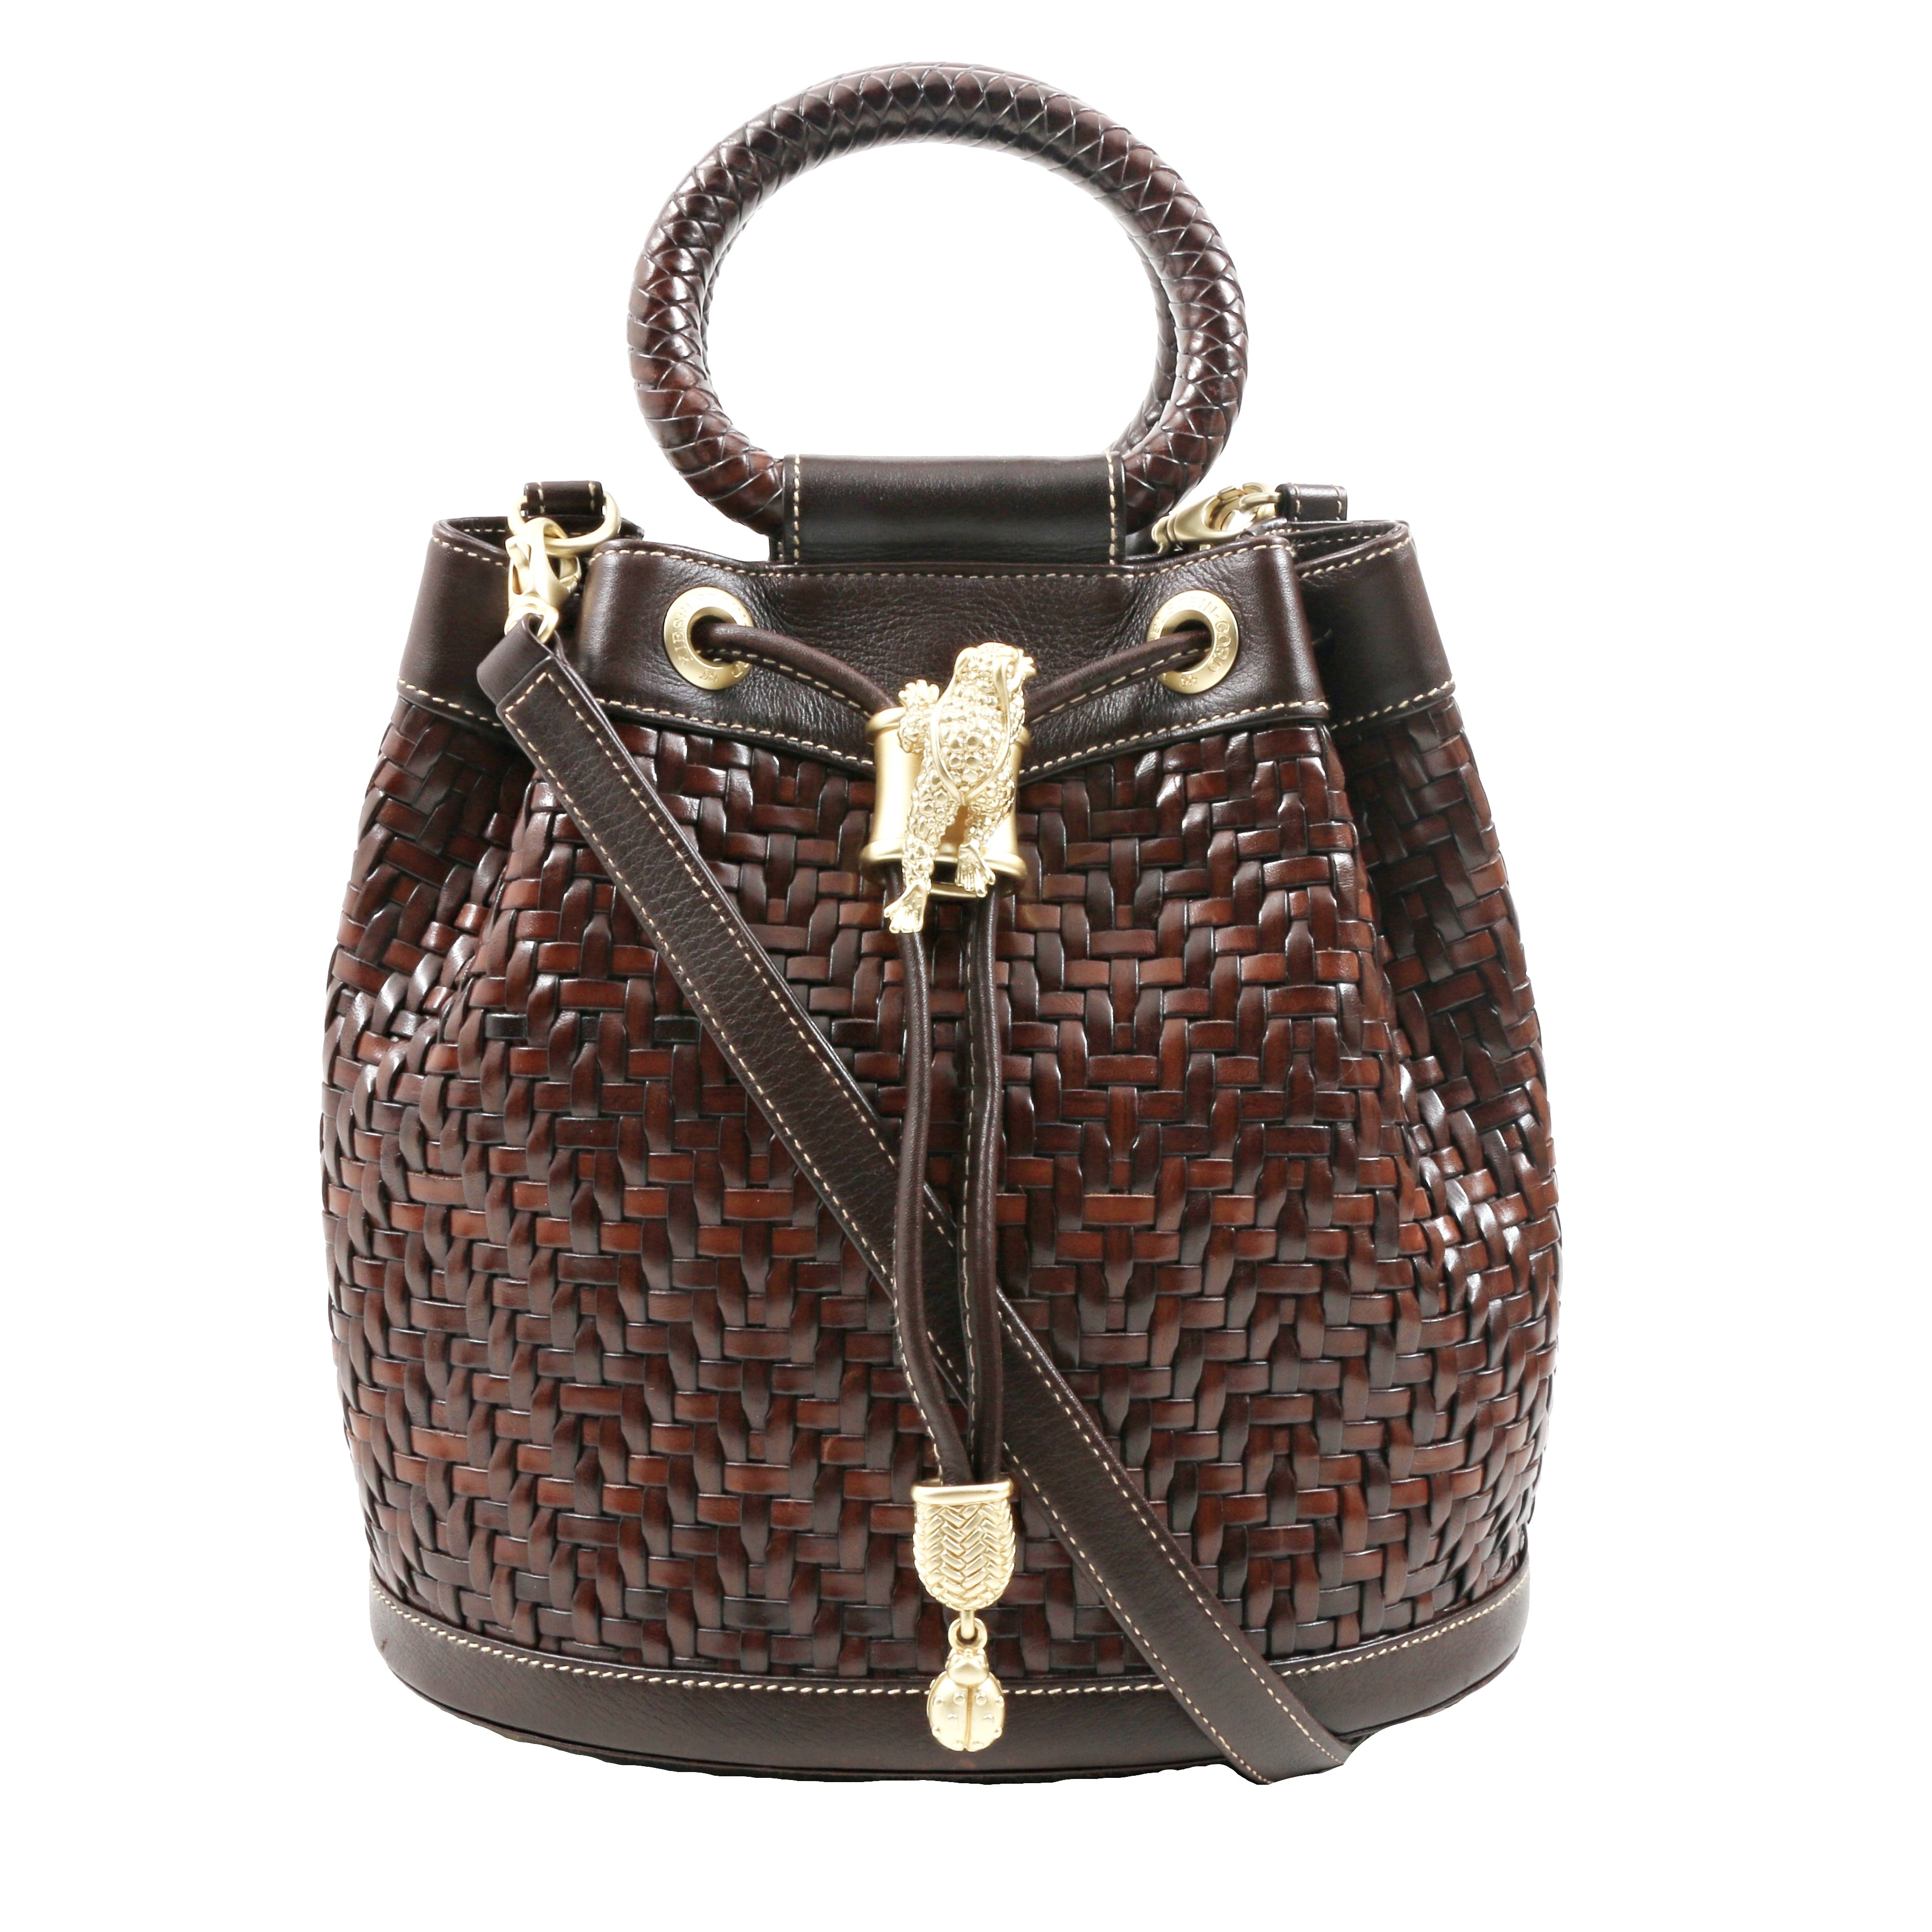 Barry Kieselstein-Cord Brown Woven Leather Drawstring Bucket Handbag with Lizard